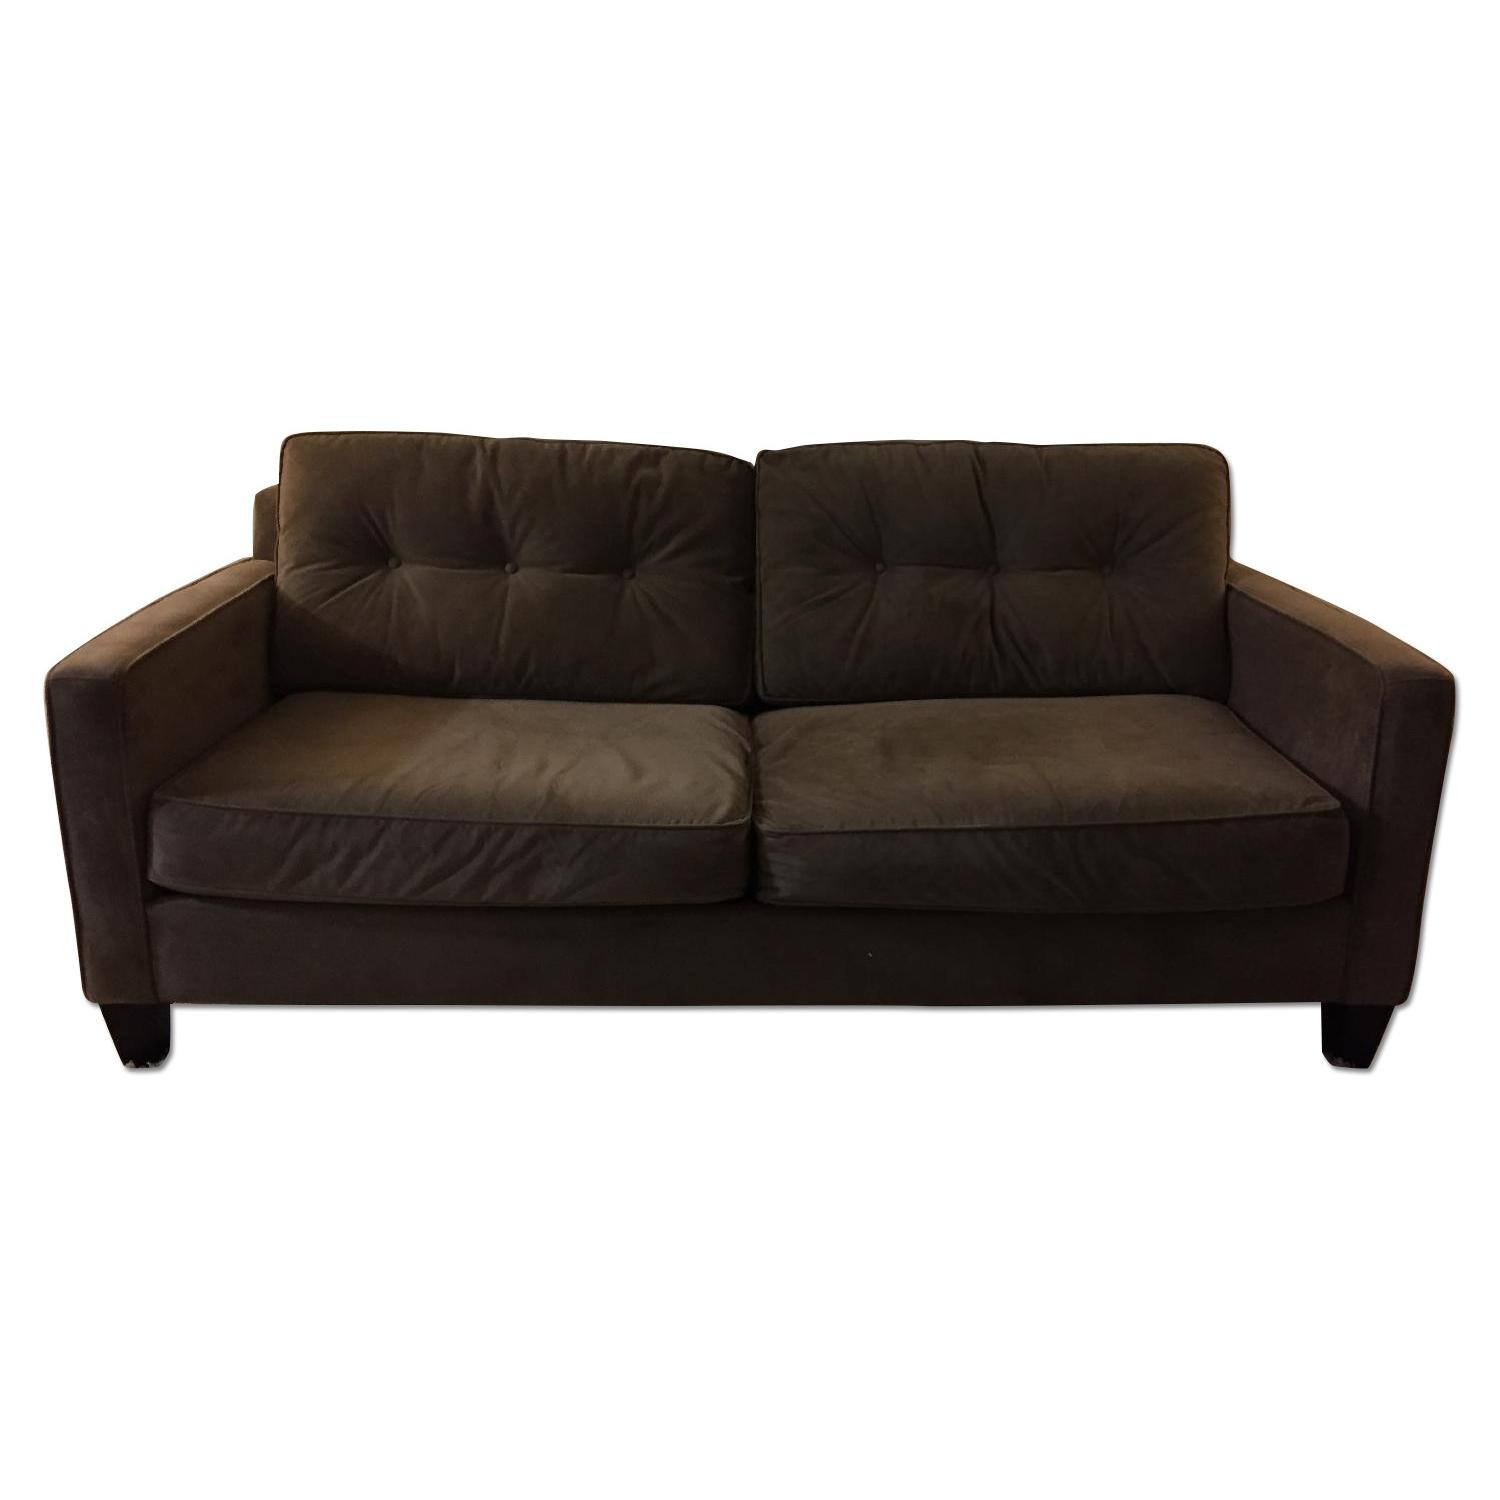 raymour and flanigan sectional sofas victorville foldable futon sofa bed by gold sparrow used microfiber for sale in nyc